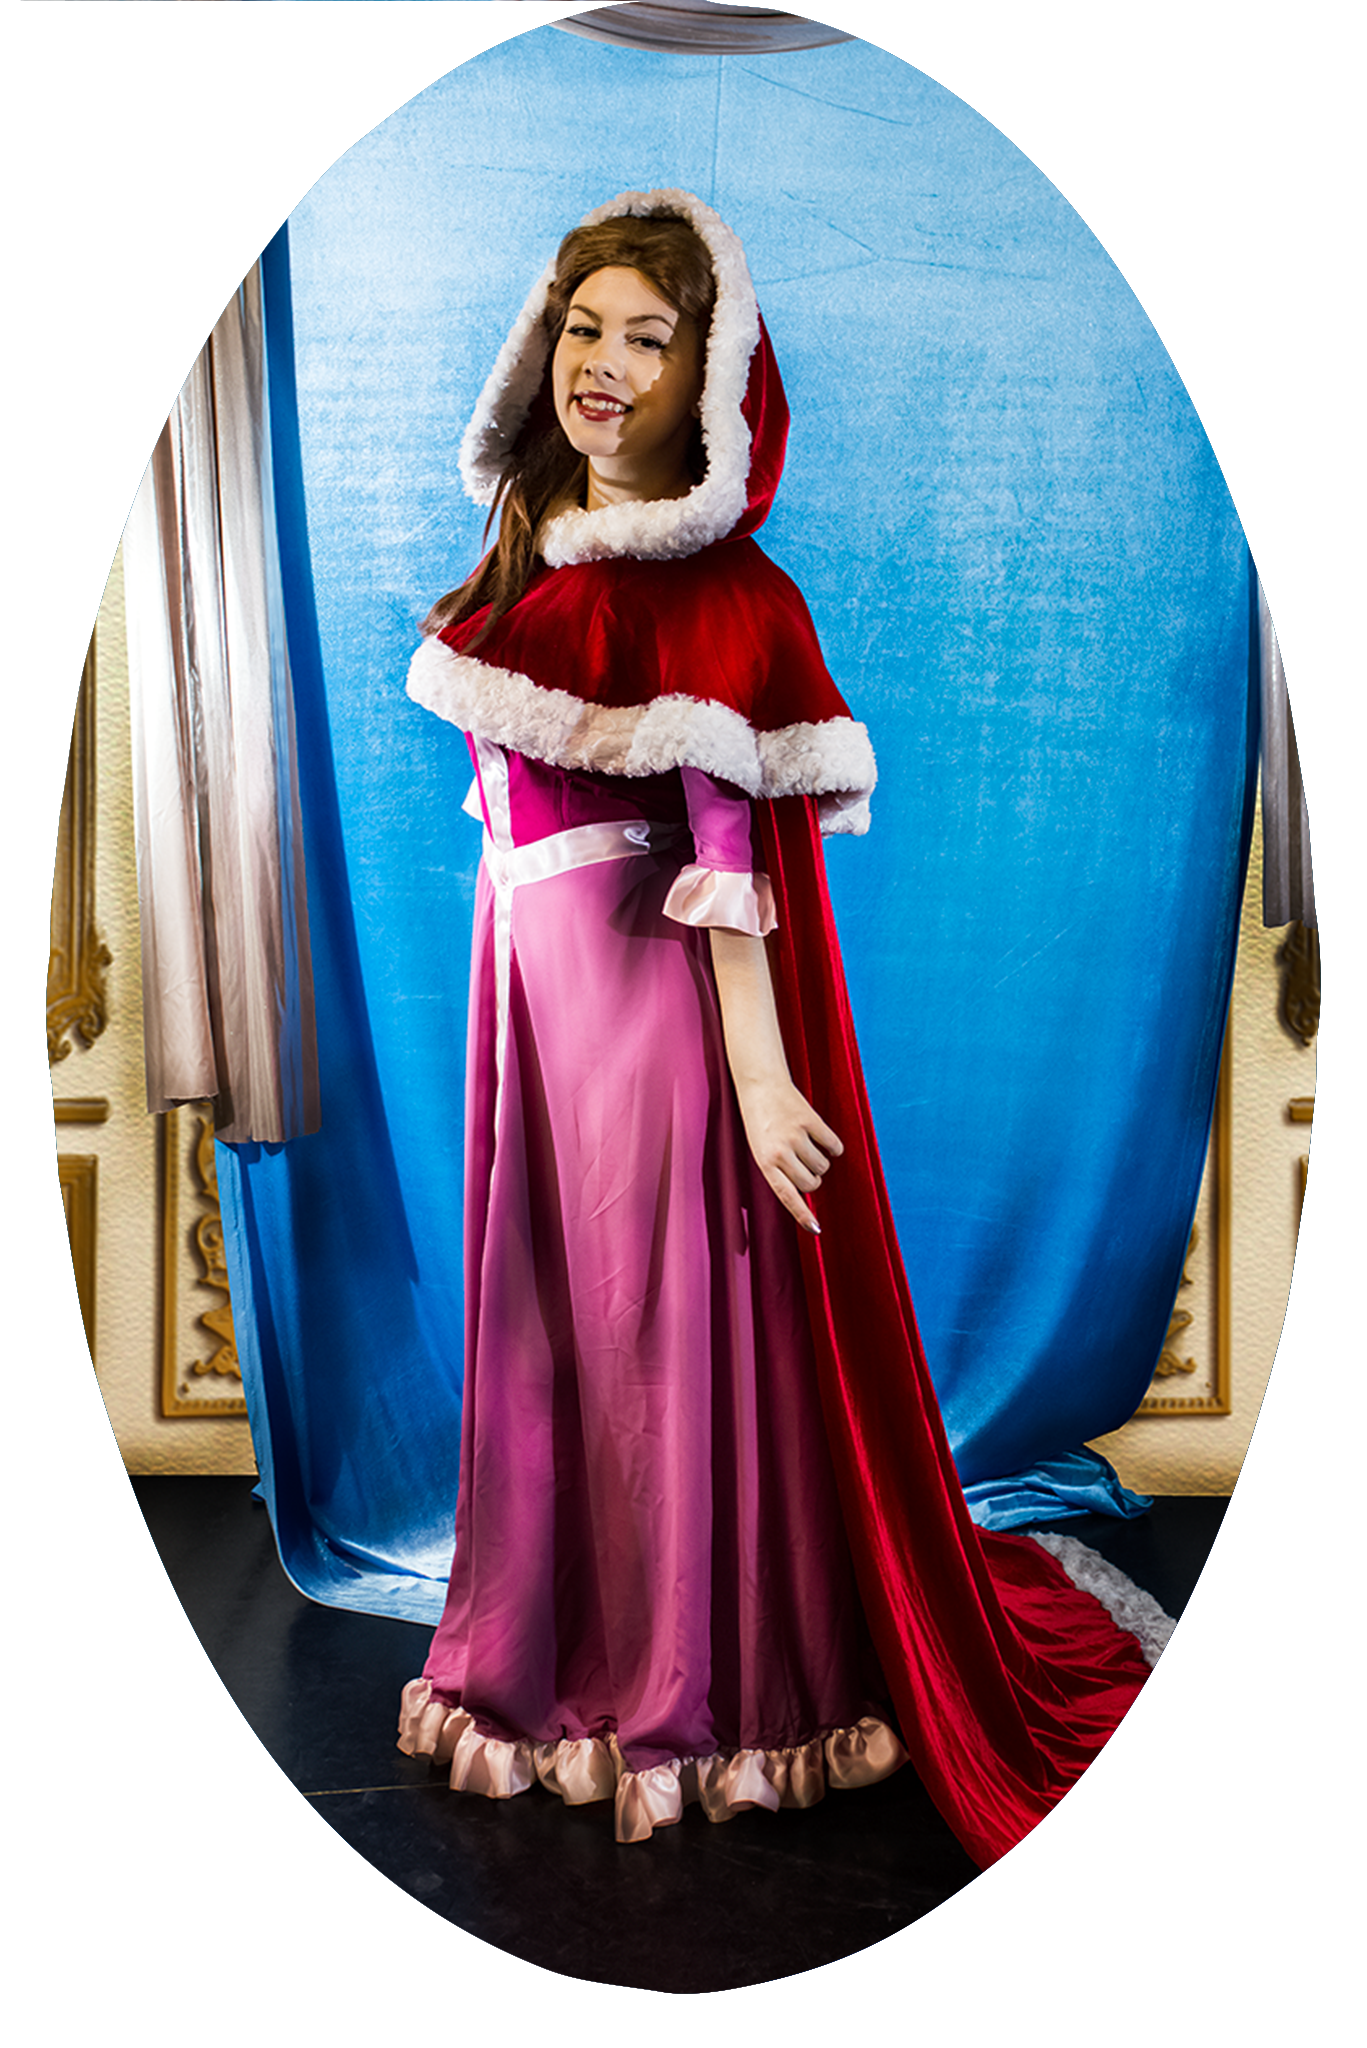 ppbm-princess-belle-winterl.jpg